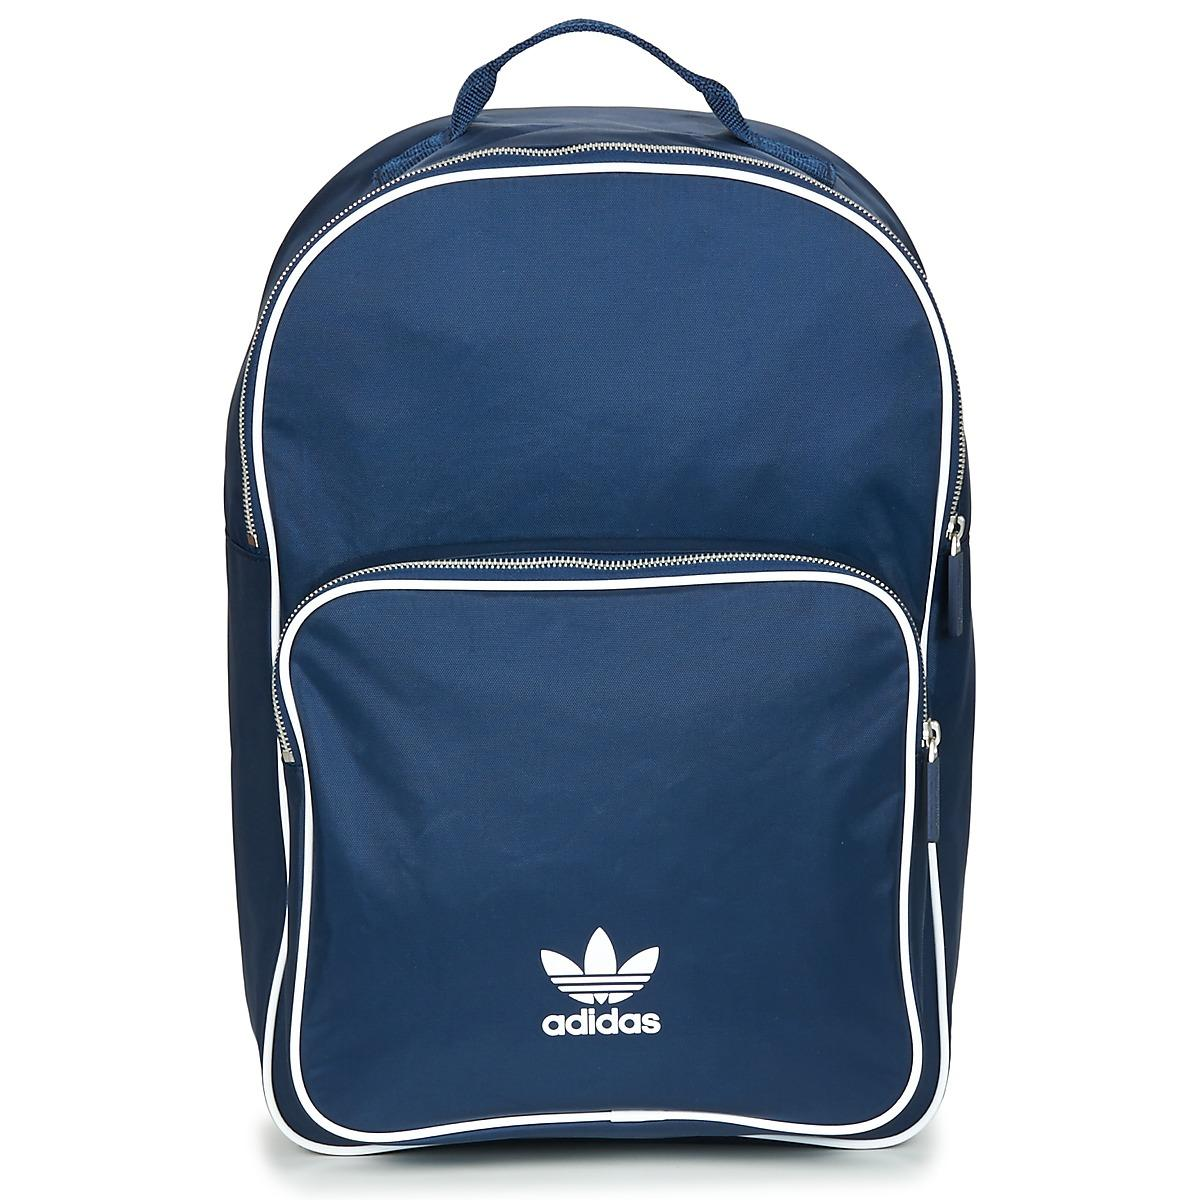 Adidas - Blue Bp Cl Adicolor Backpack for Men - Lyst. View fullscreen 5982e03813c3a